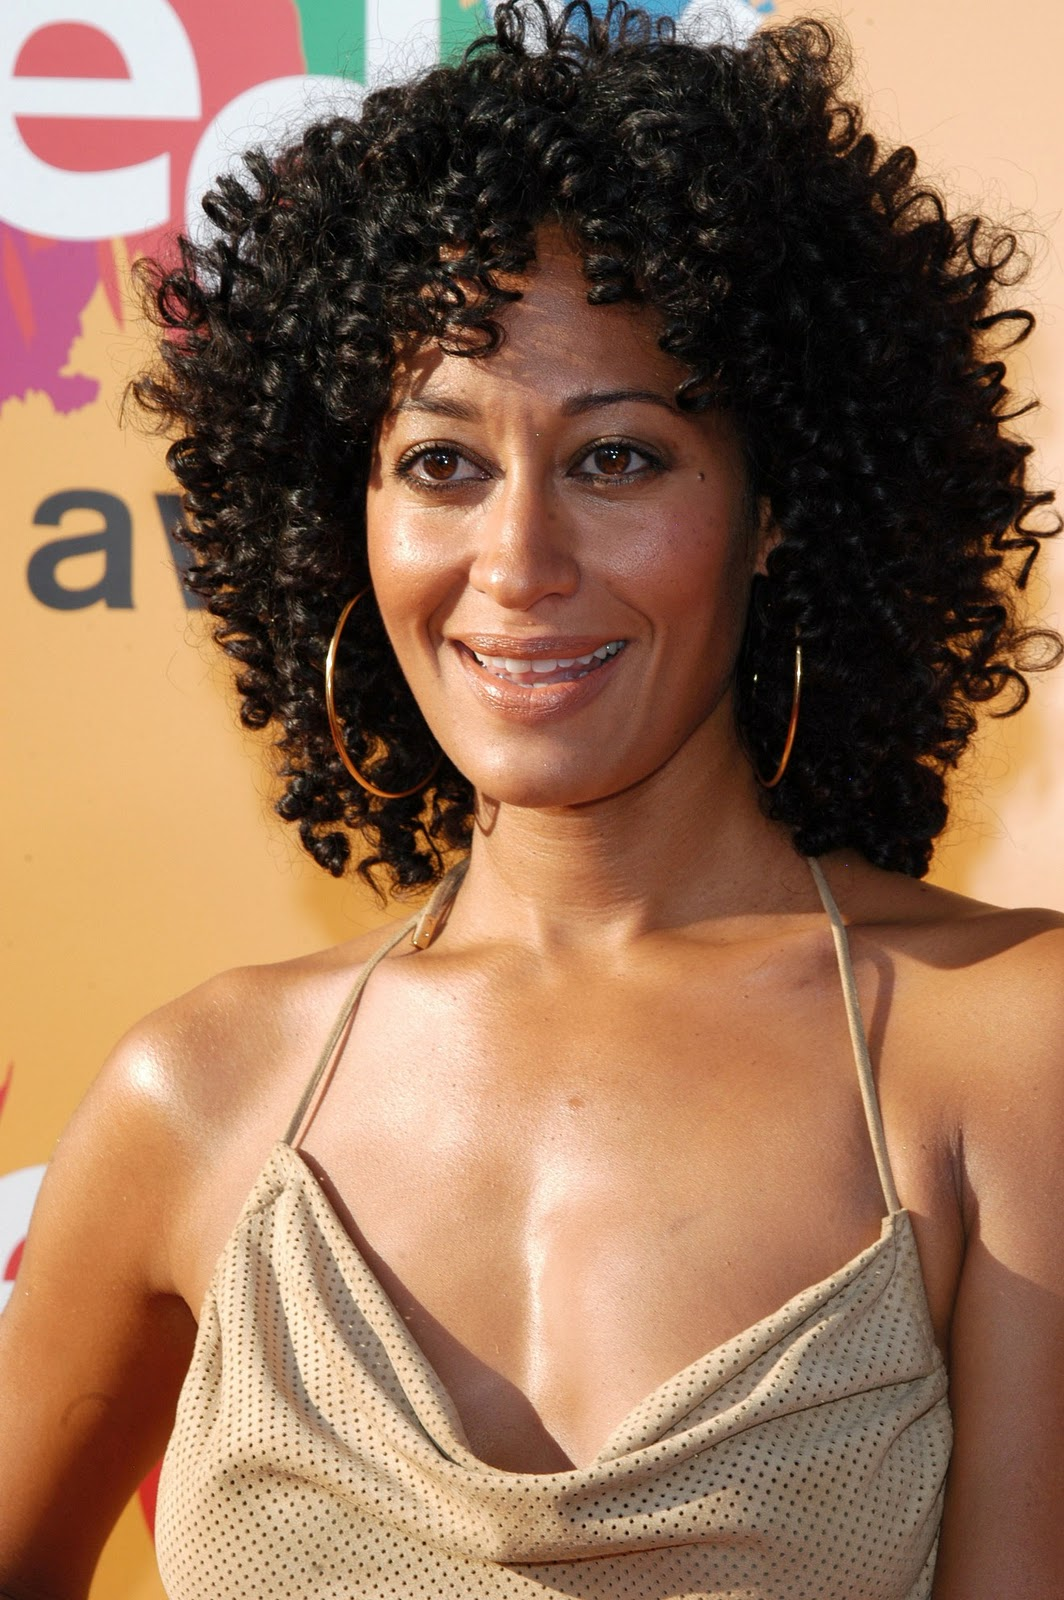 image Tracee ellis ross in towel